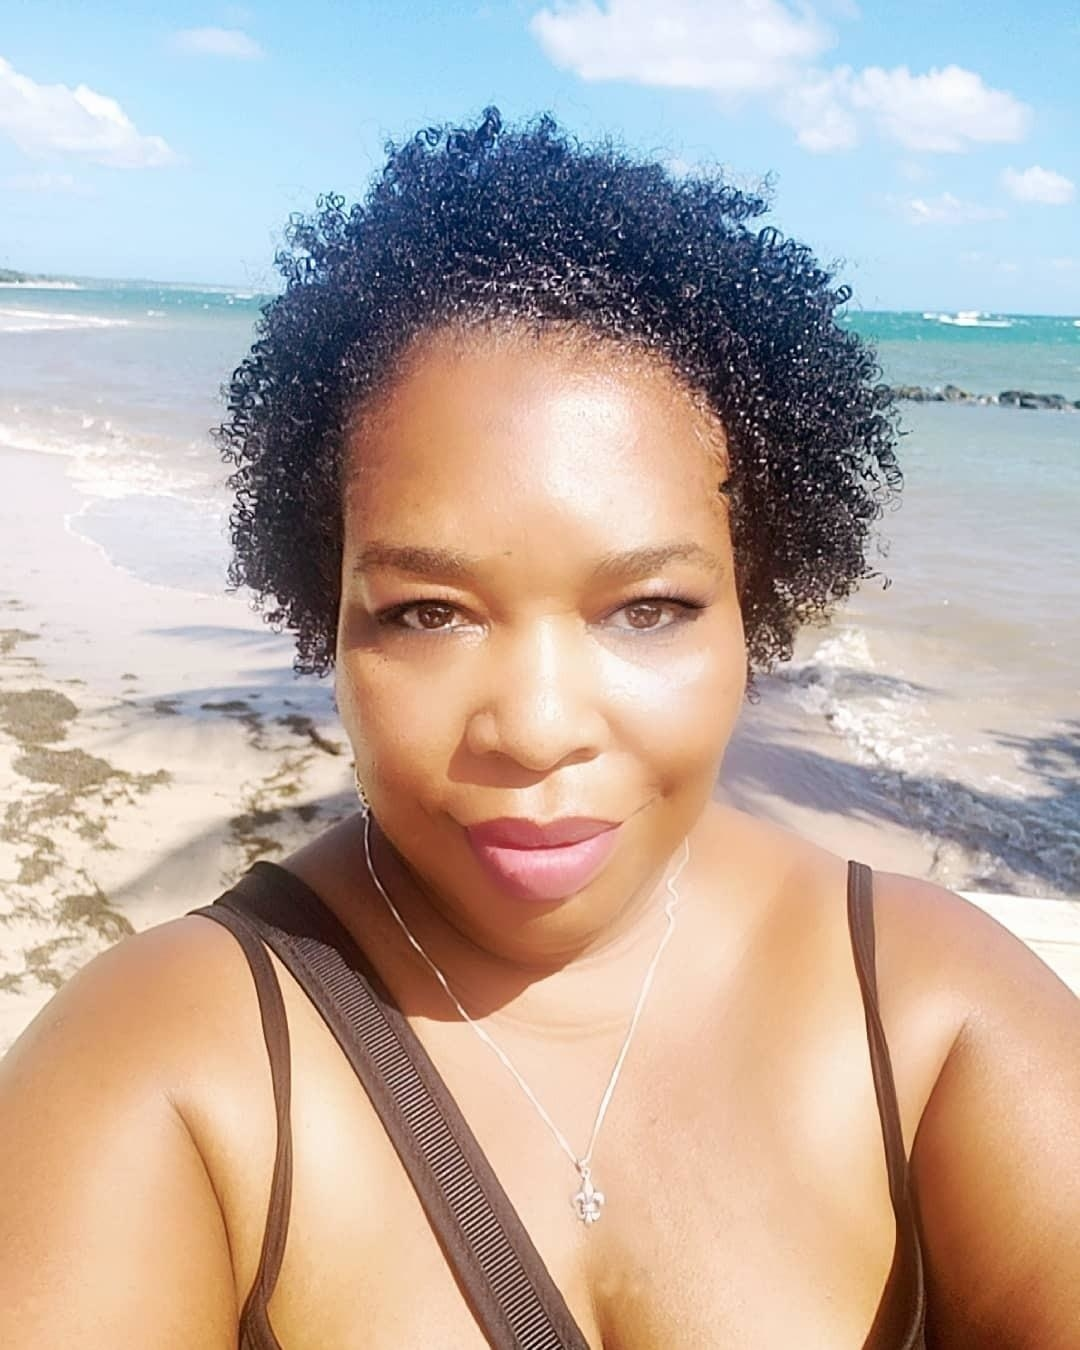 reviewer with natural hair that looks moisturized and defined